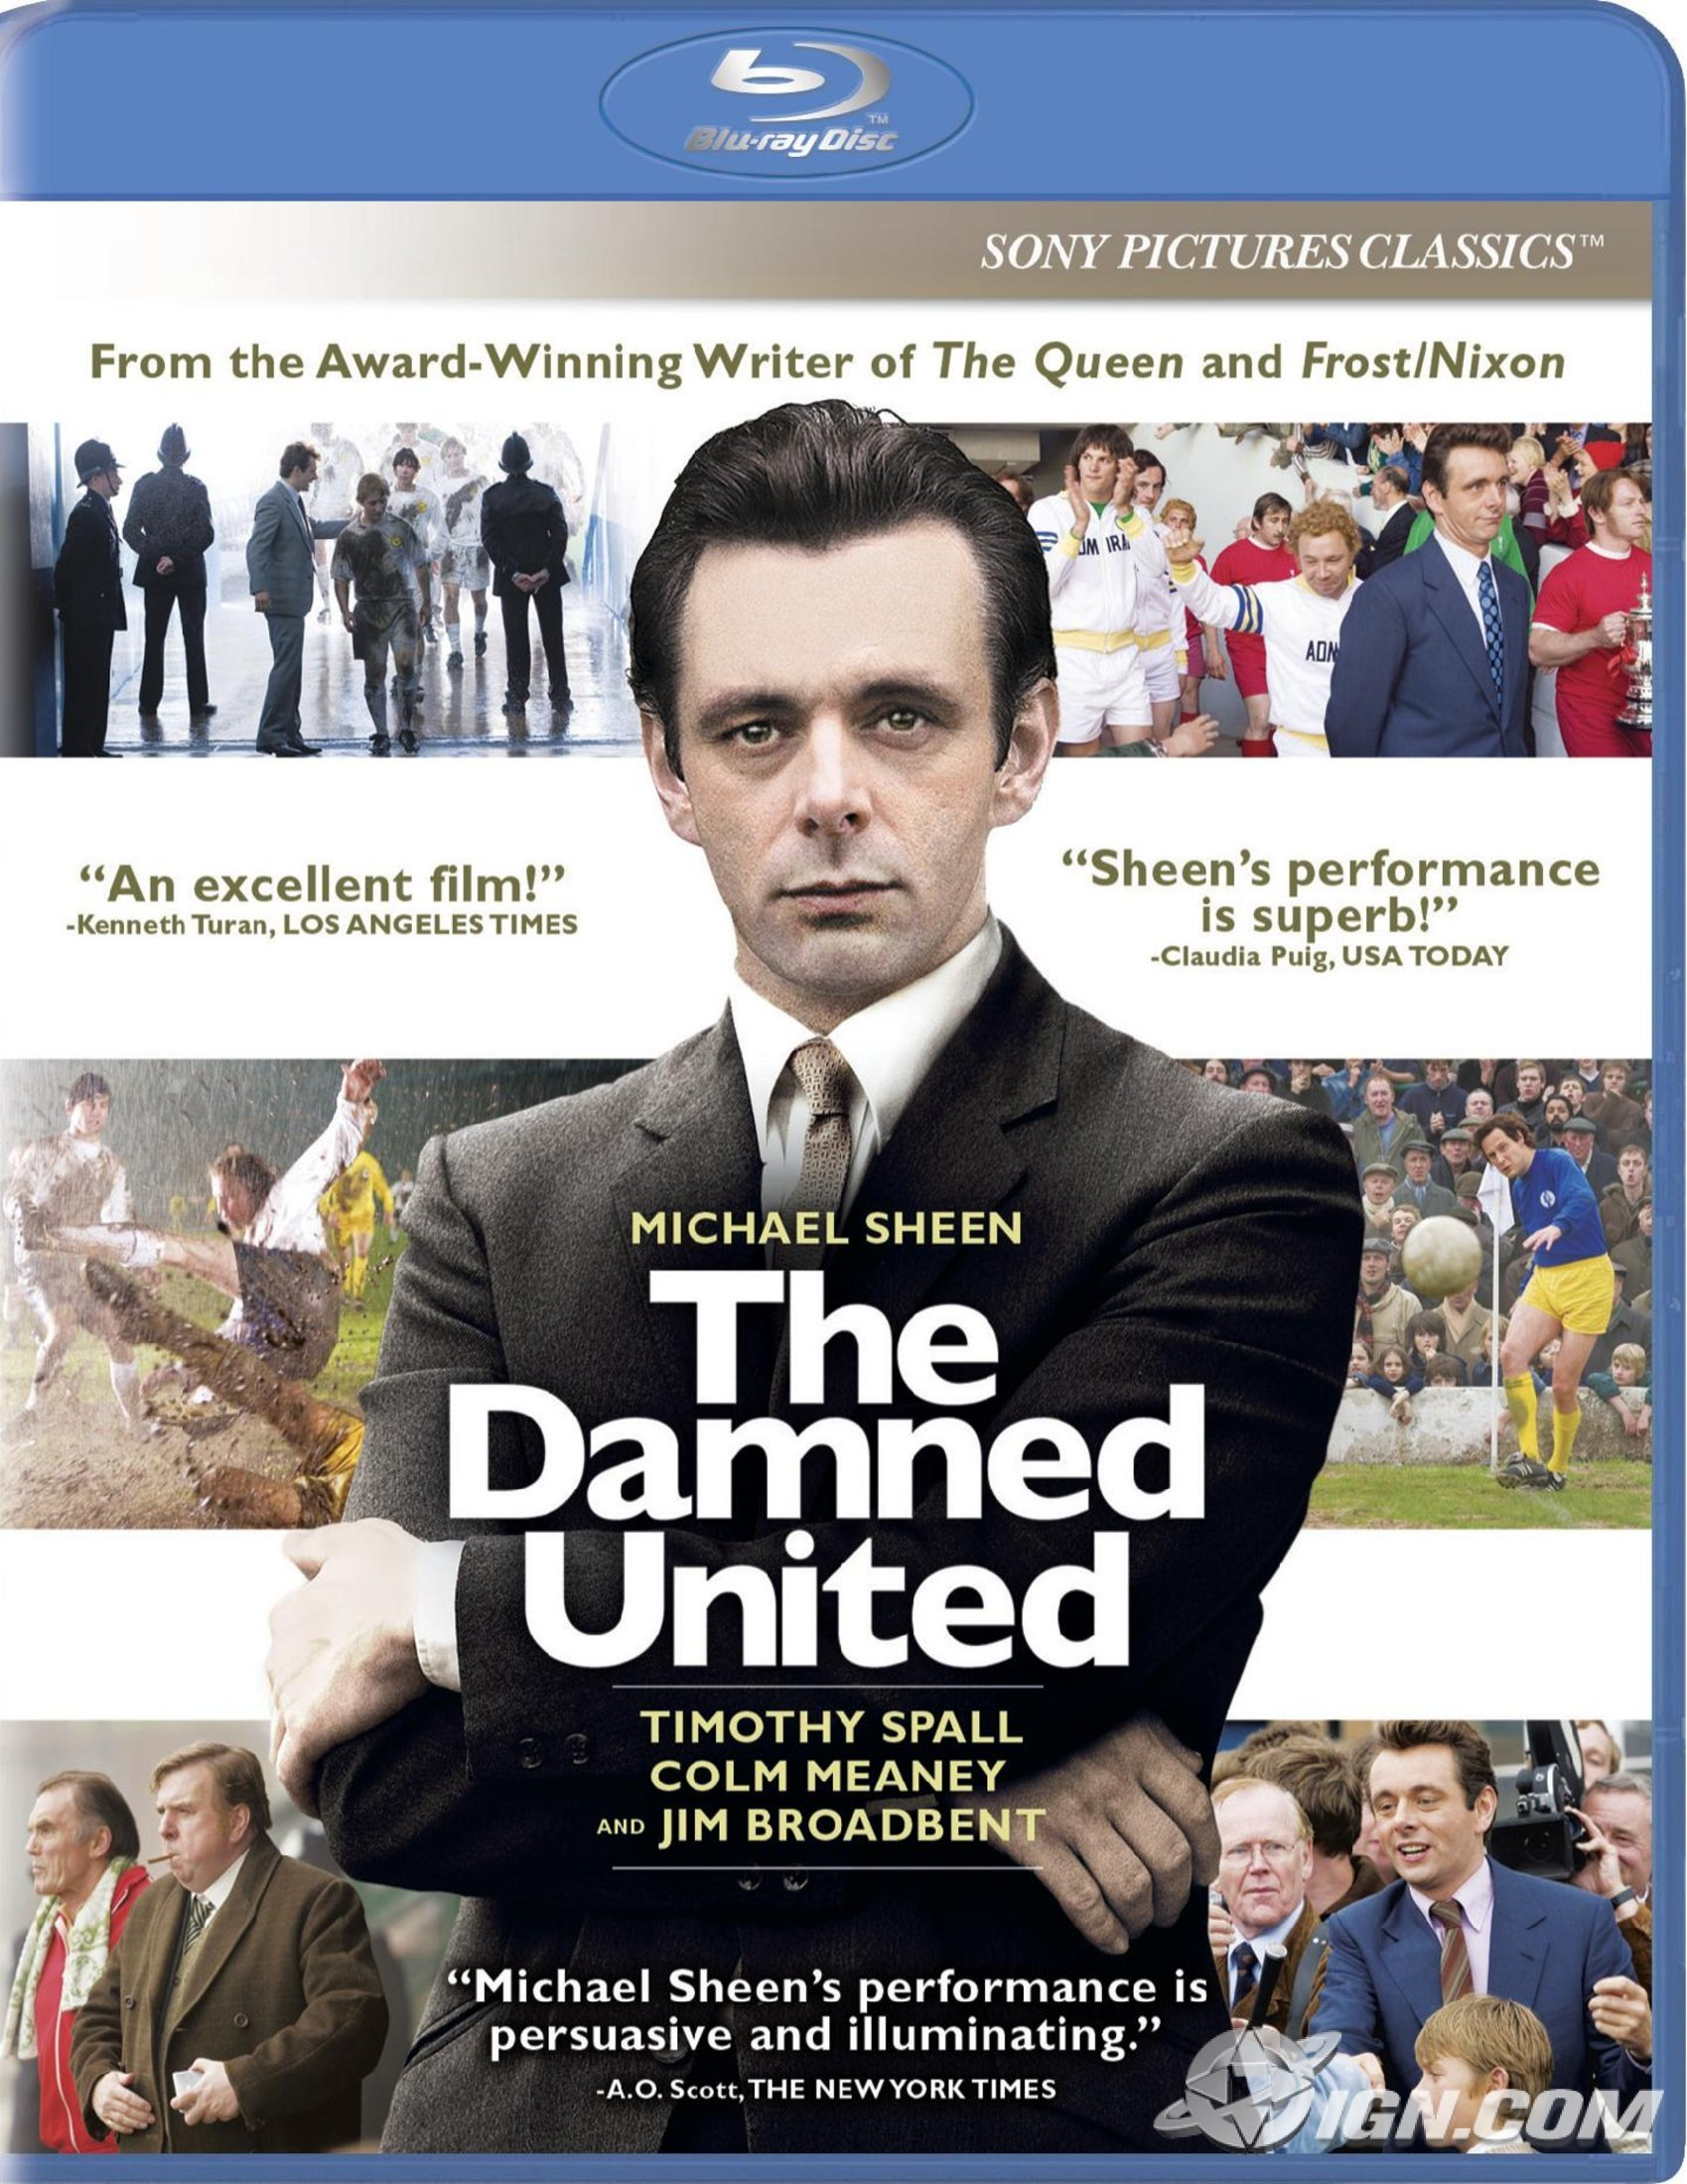 the-damned-united-20091222011016452-3090216